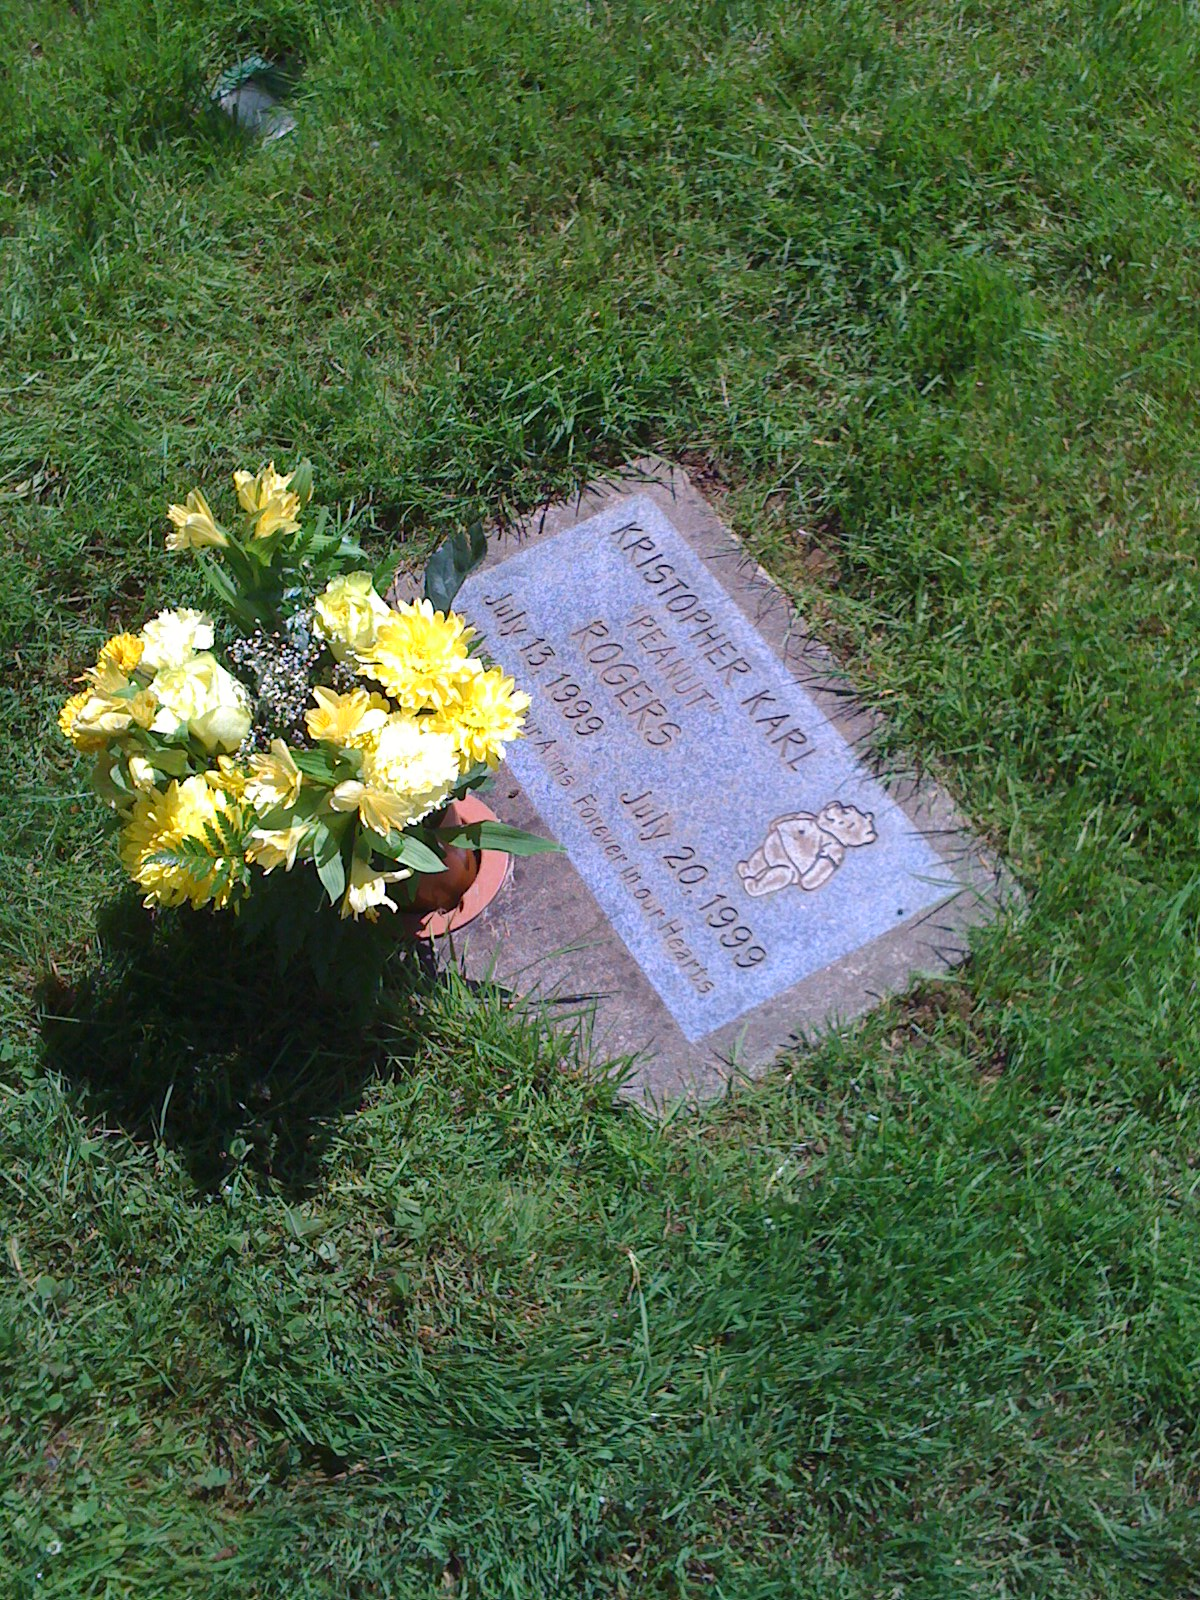 Kristophers Headstone